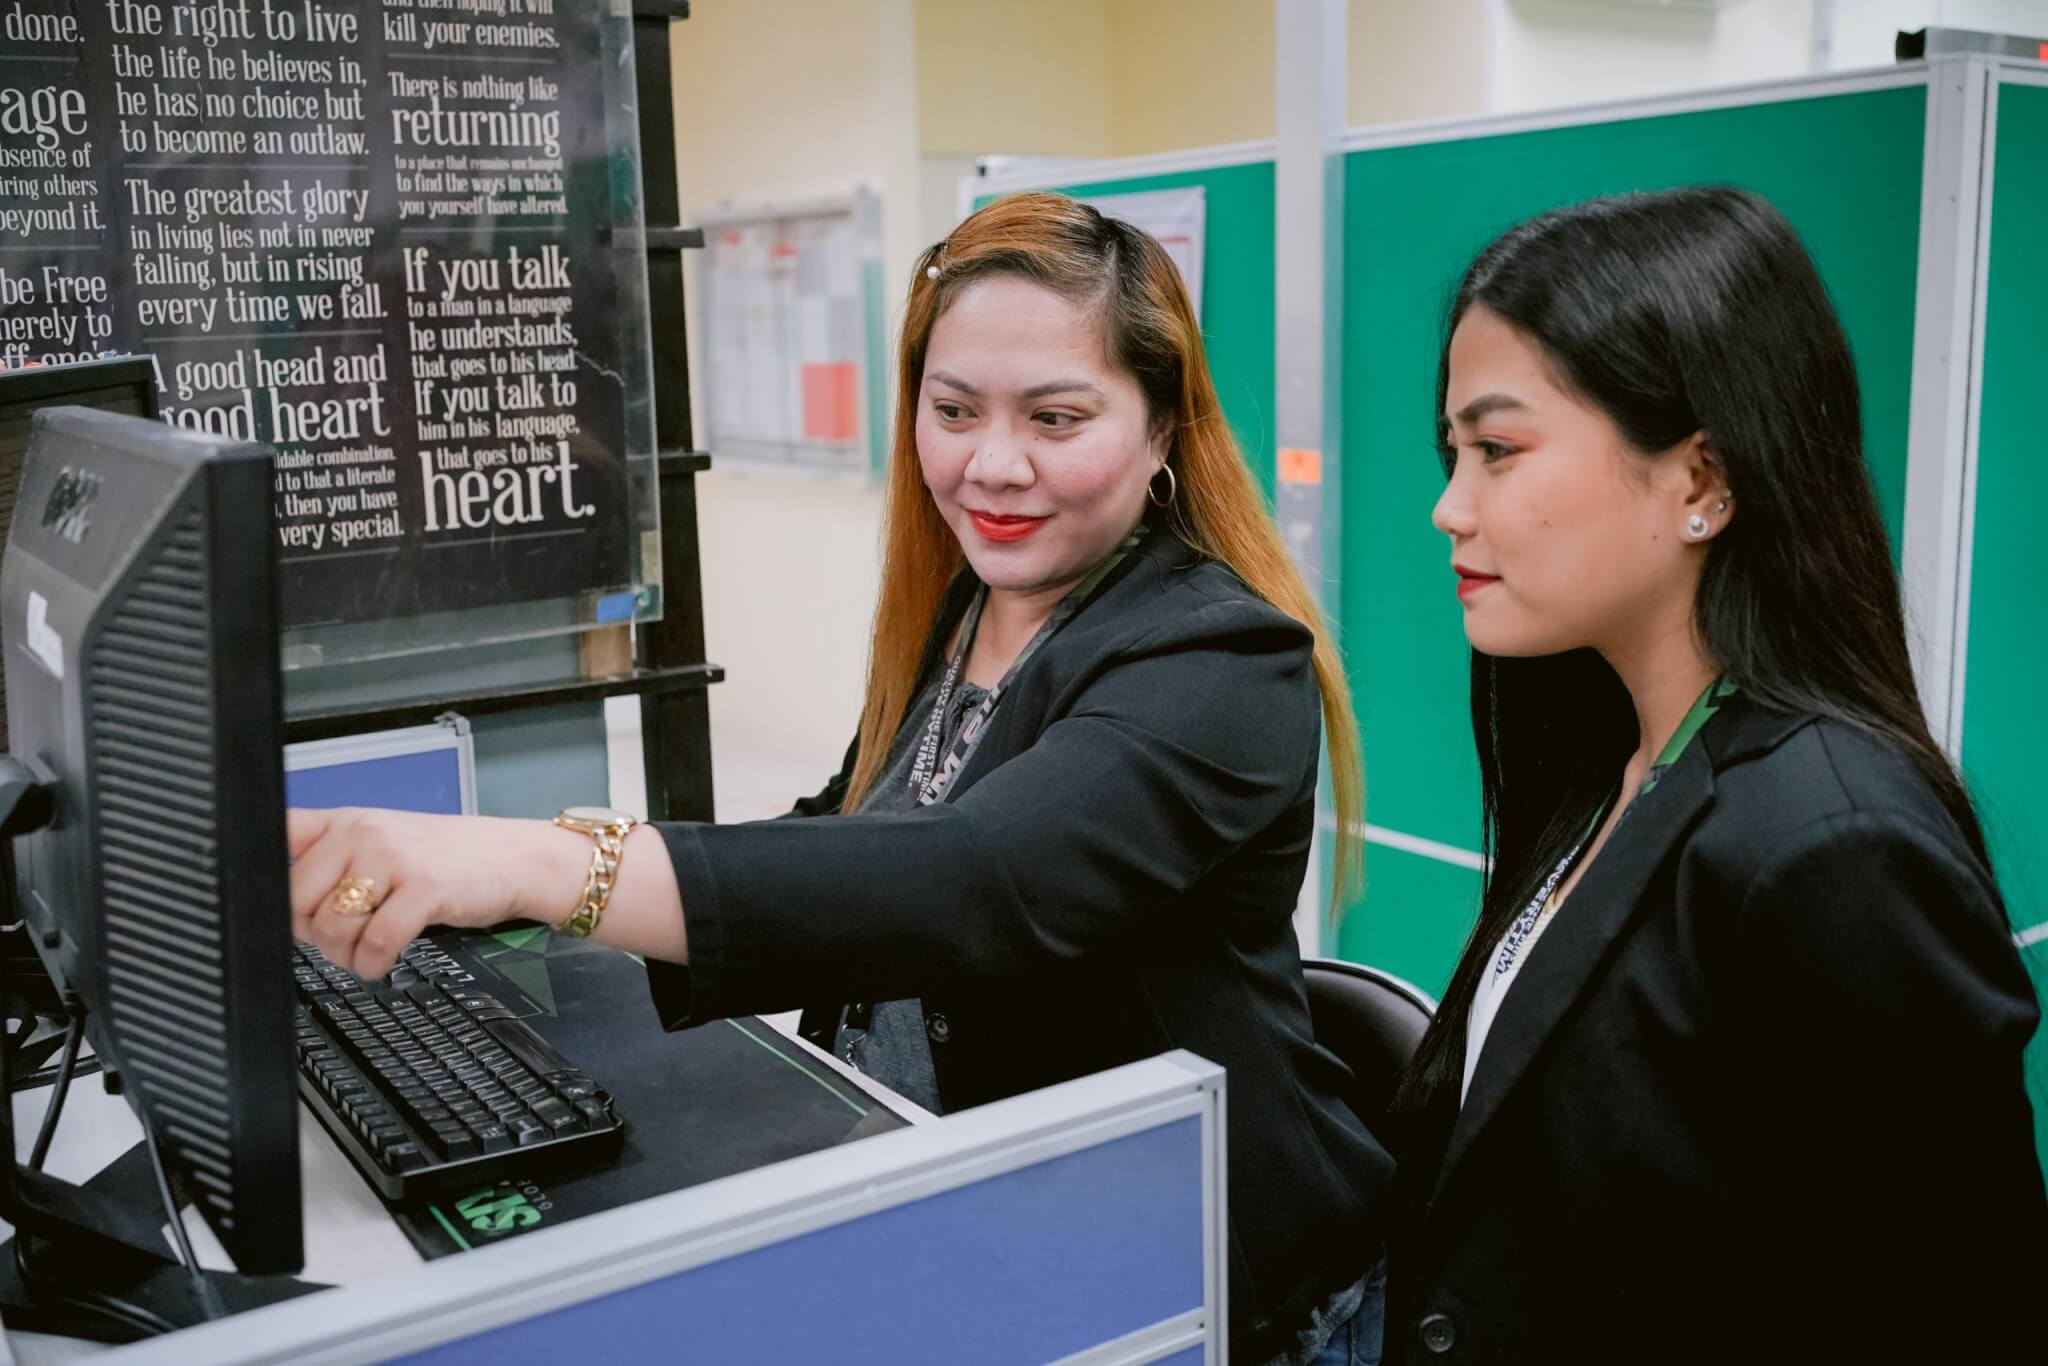 SixEleven BPO opens career opportunities amid pandemic